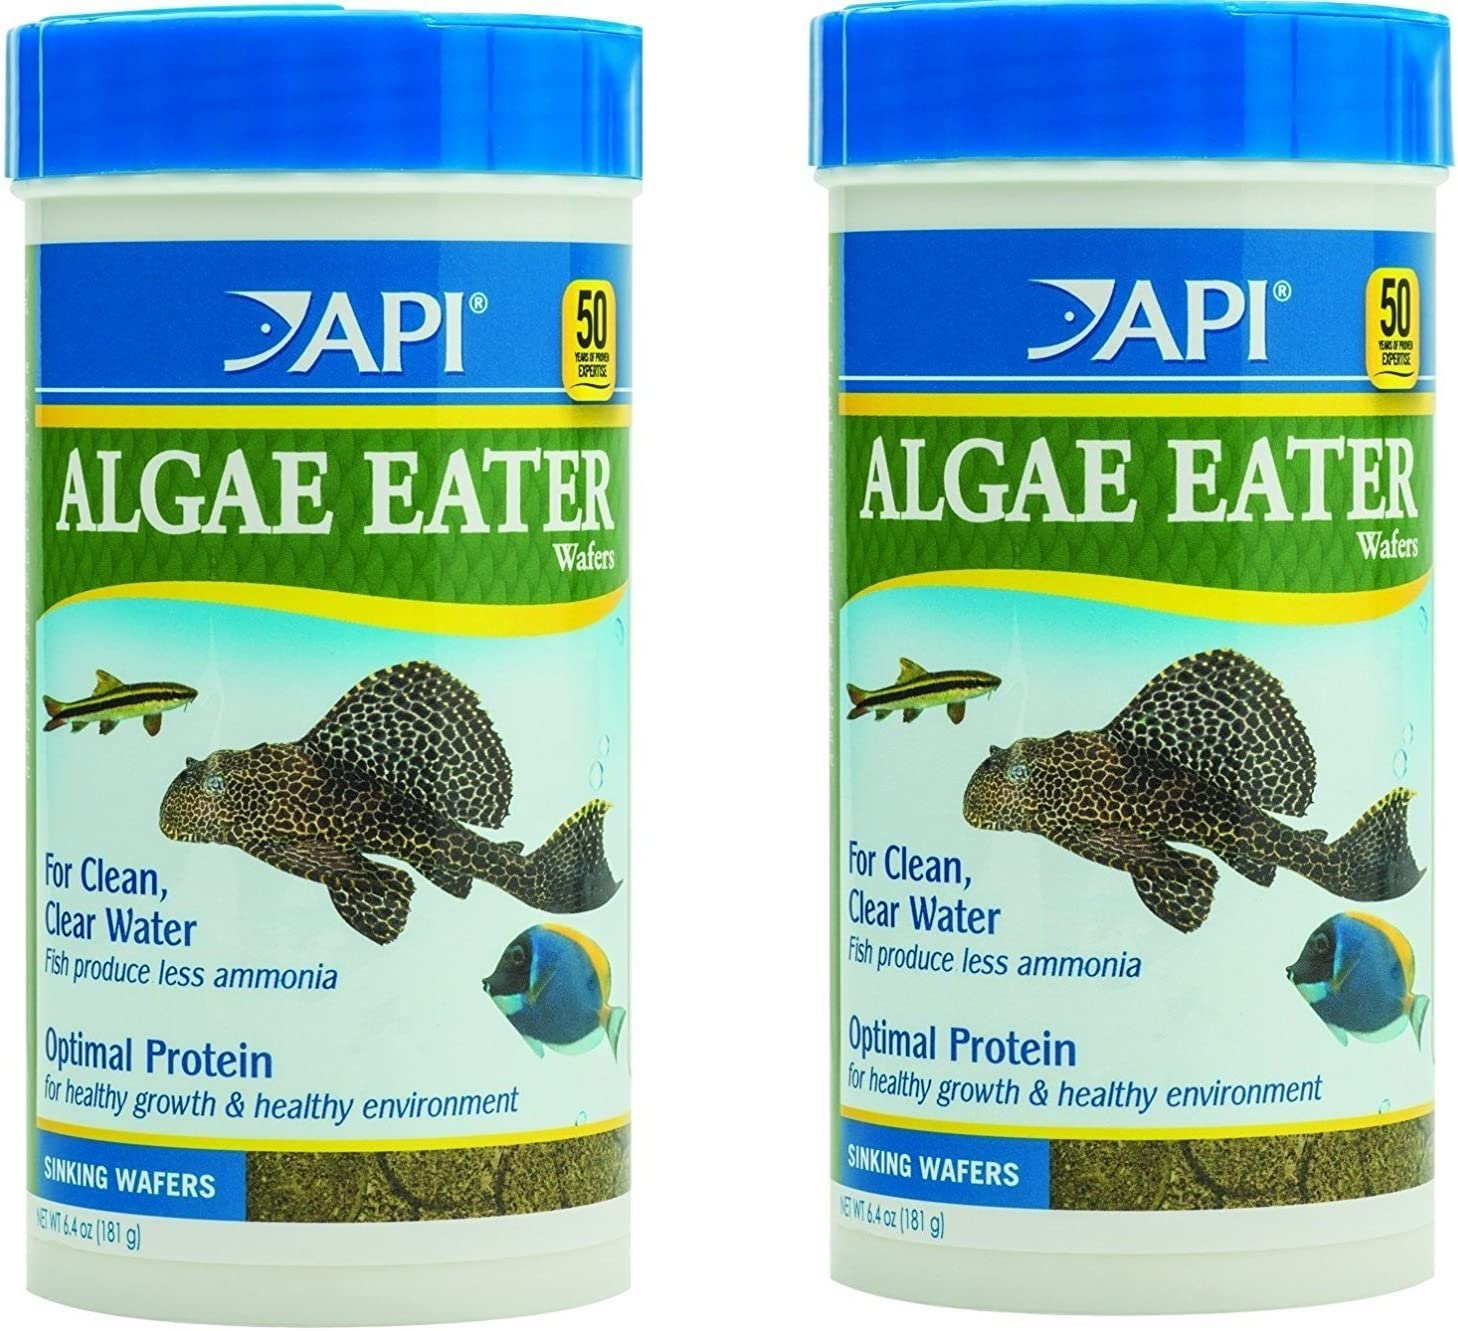 (2 Pack) API Algae Eater Alage Wafer, 6.4-Ounce Jars